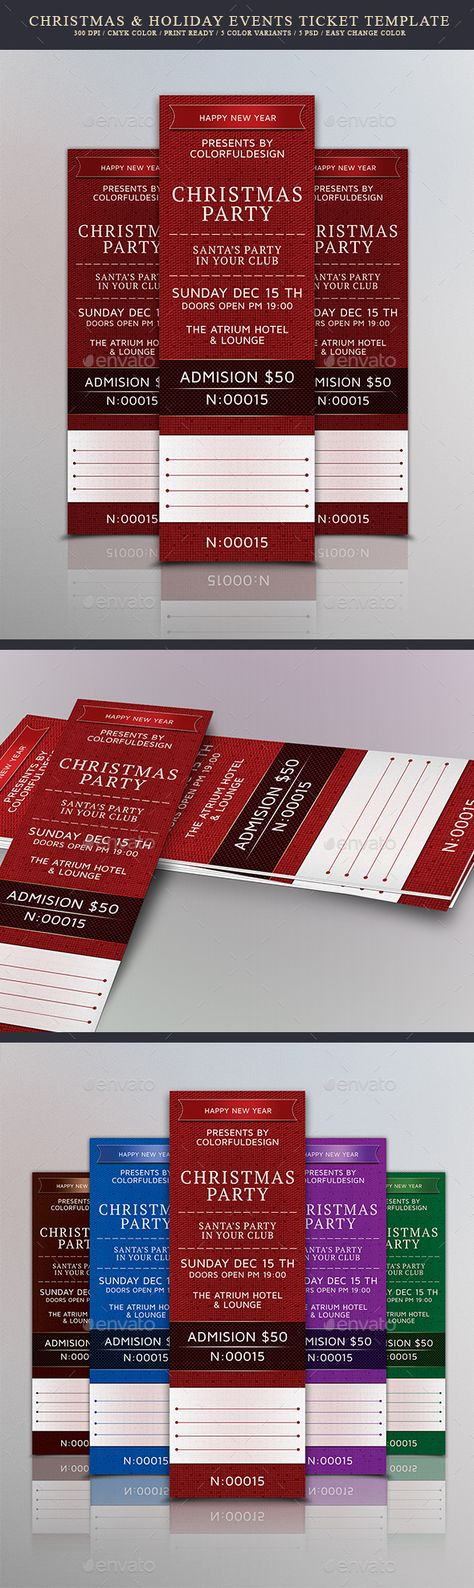 Christmas \ Holiday Events Ticket Template Ticket template - event tickets template